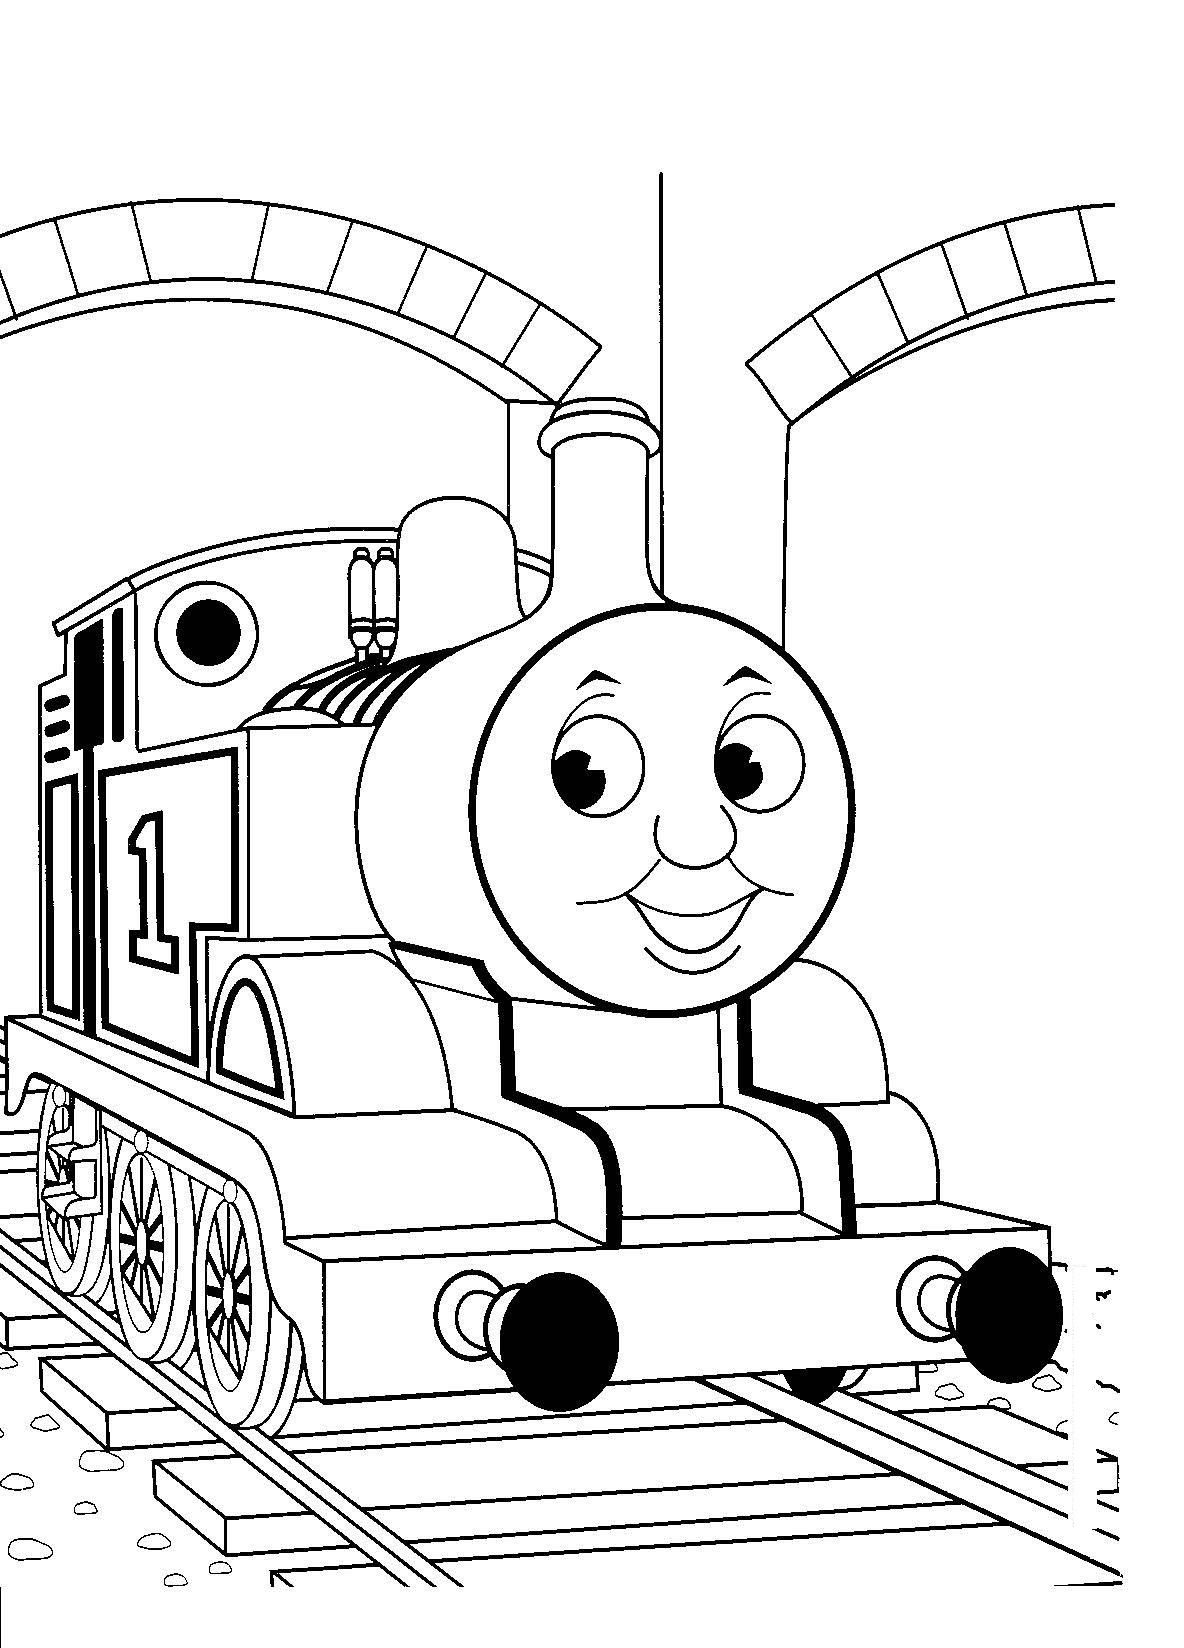 Free Printable Train Coloring Pages For Kids Train Coloring Pages Valentines Day Coloring Page Coloring Books